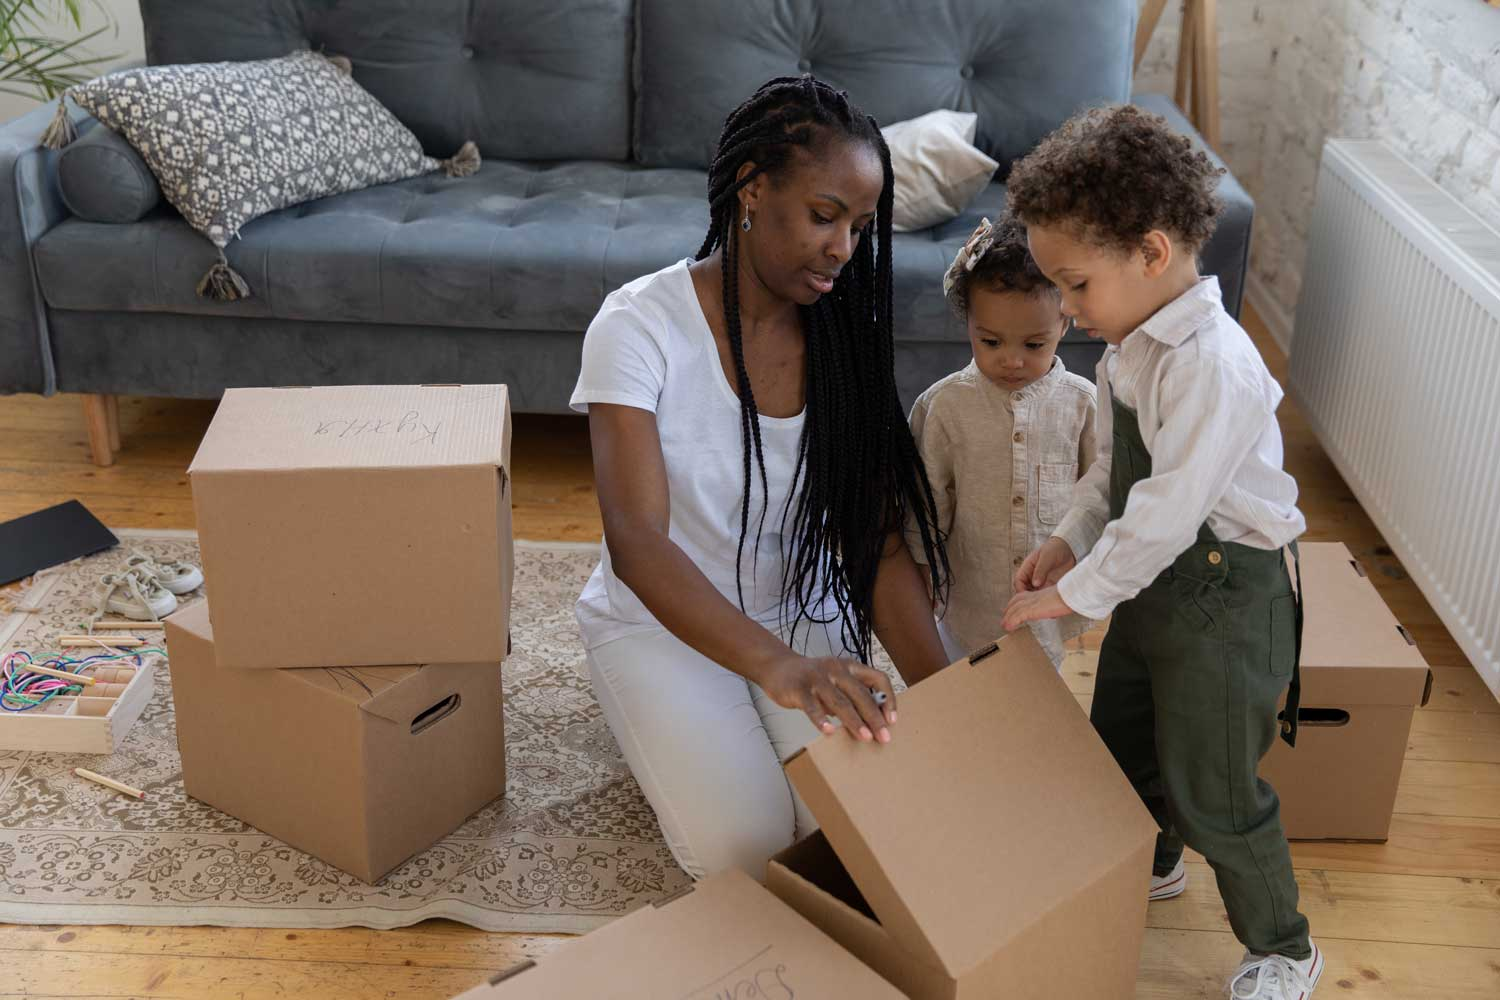 Woman with kids on their new home unpacking boxes